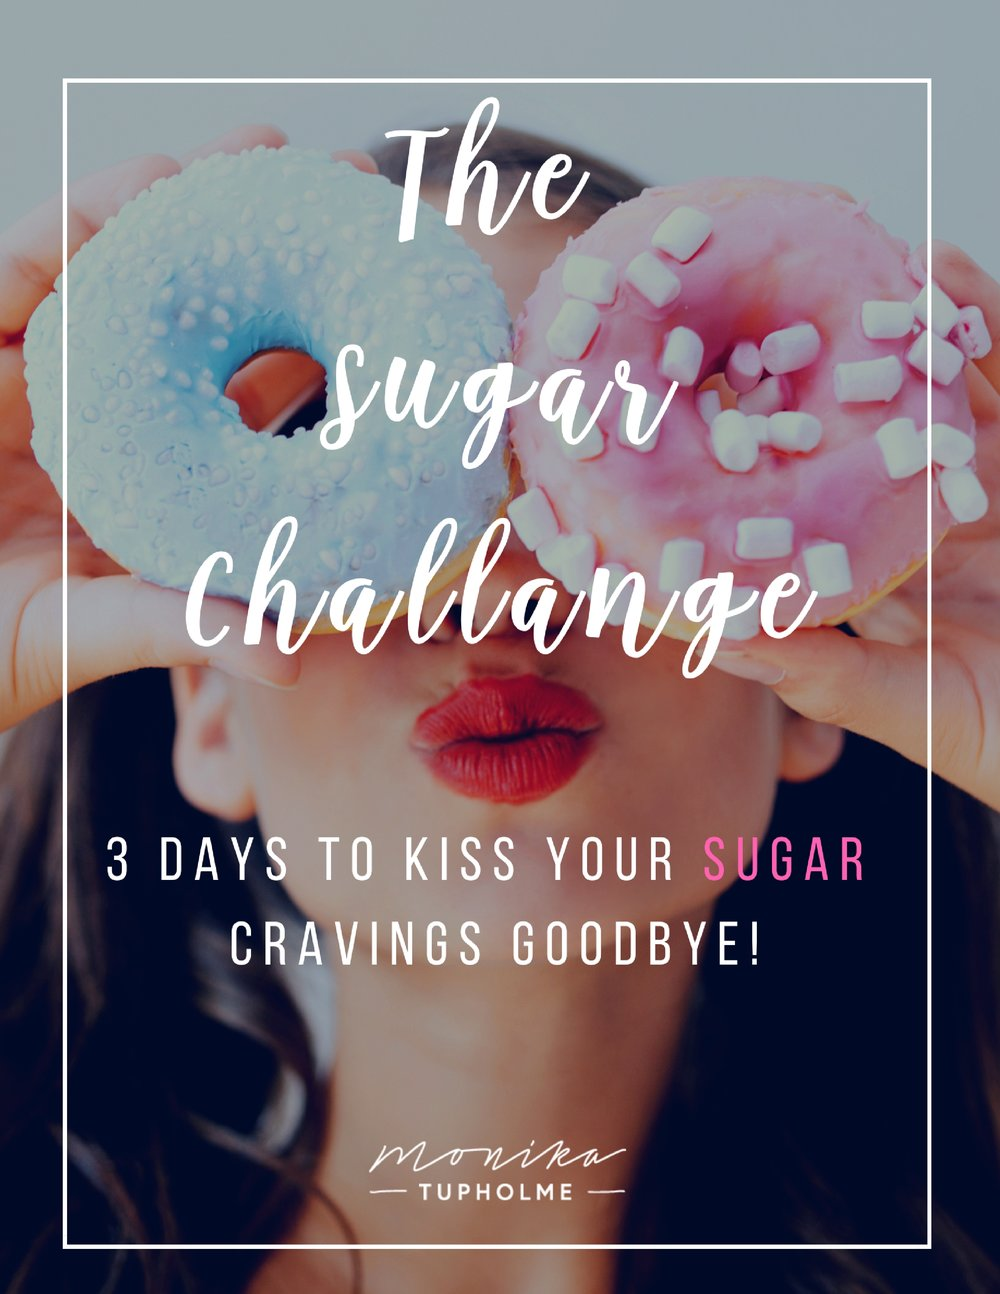 The SugarChallenge.jpg